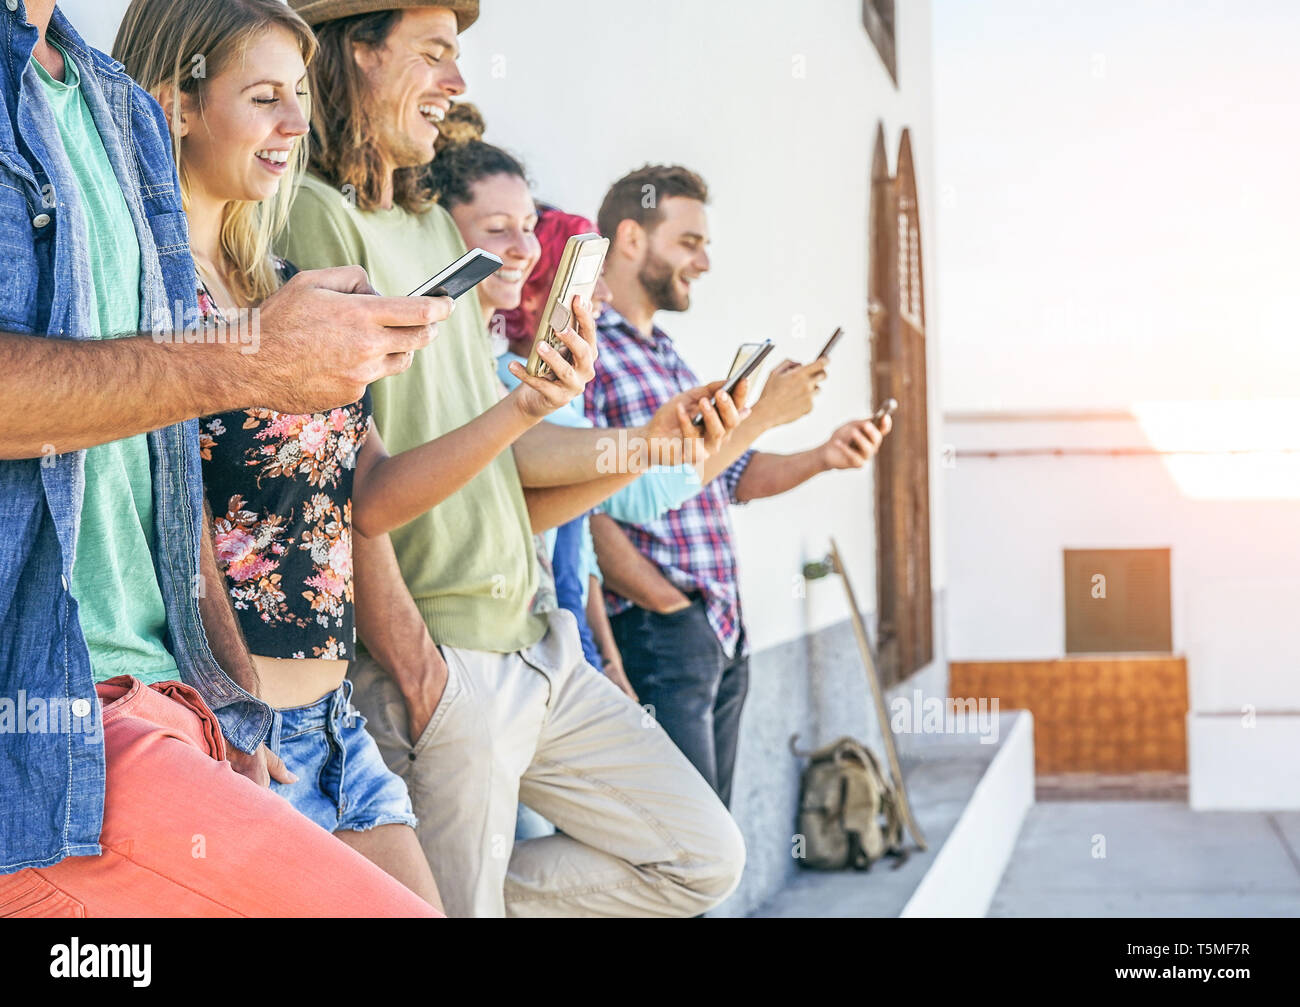 Young people watching on their smart mobile phones outdoor - Generation addicted to new smartphone technology - Stock Image